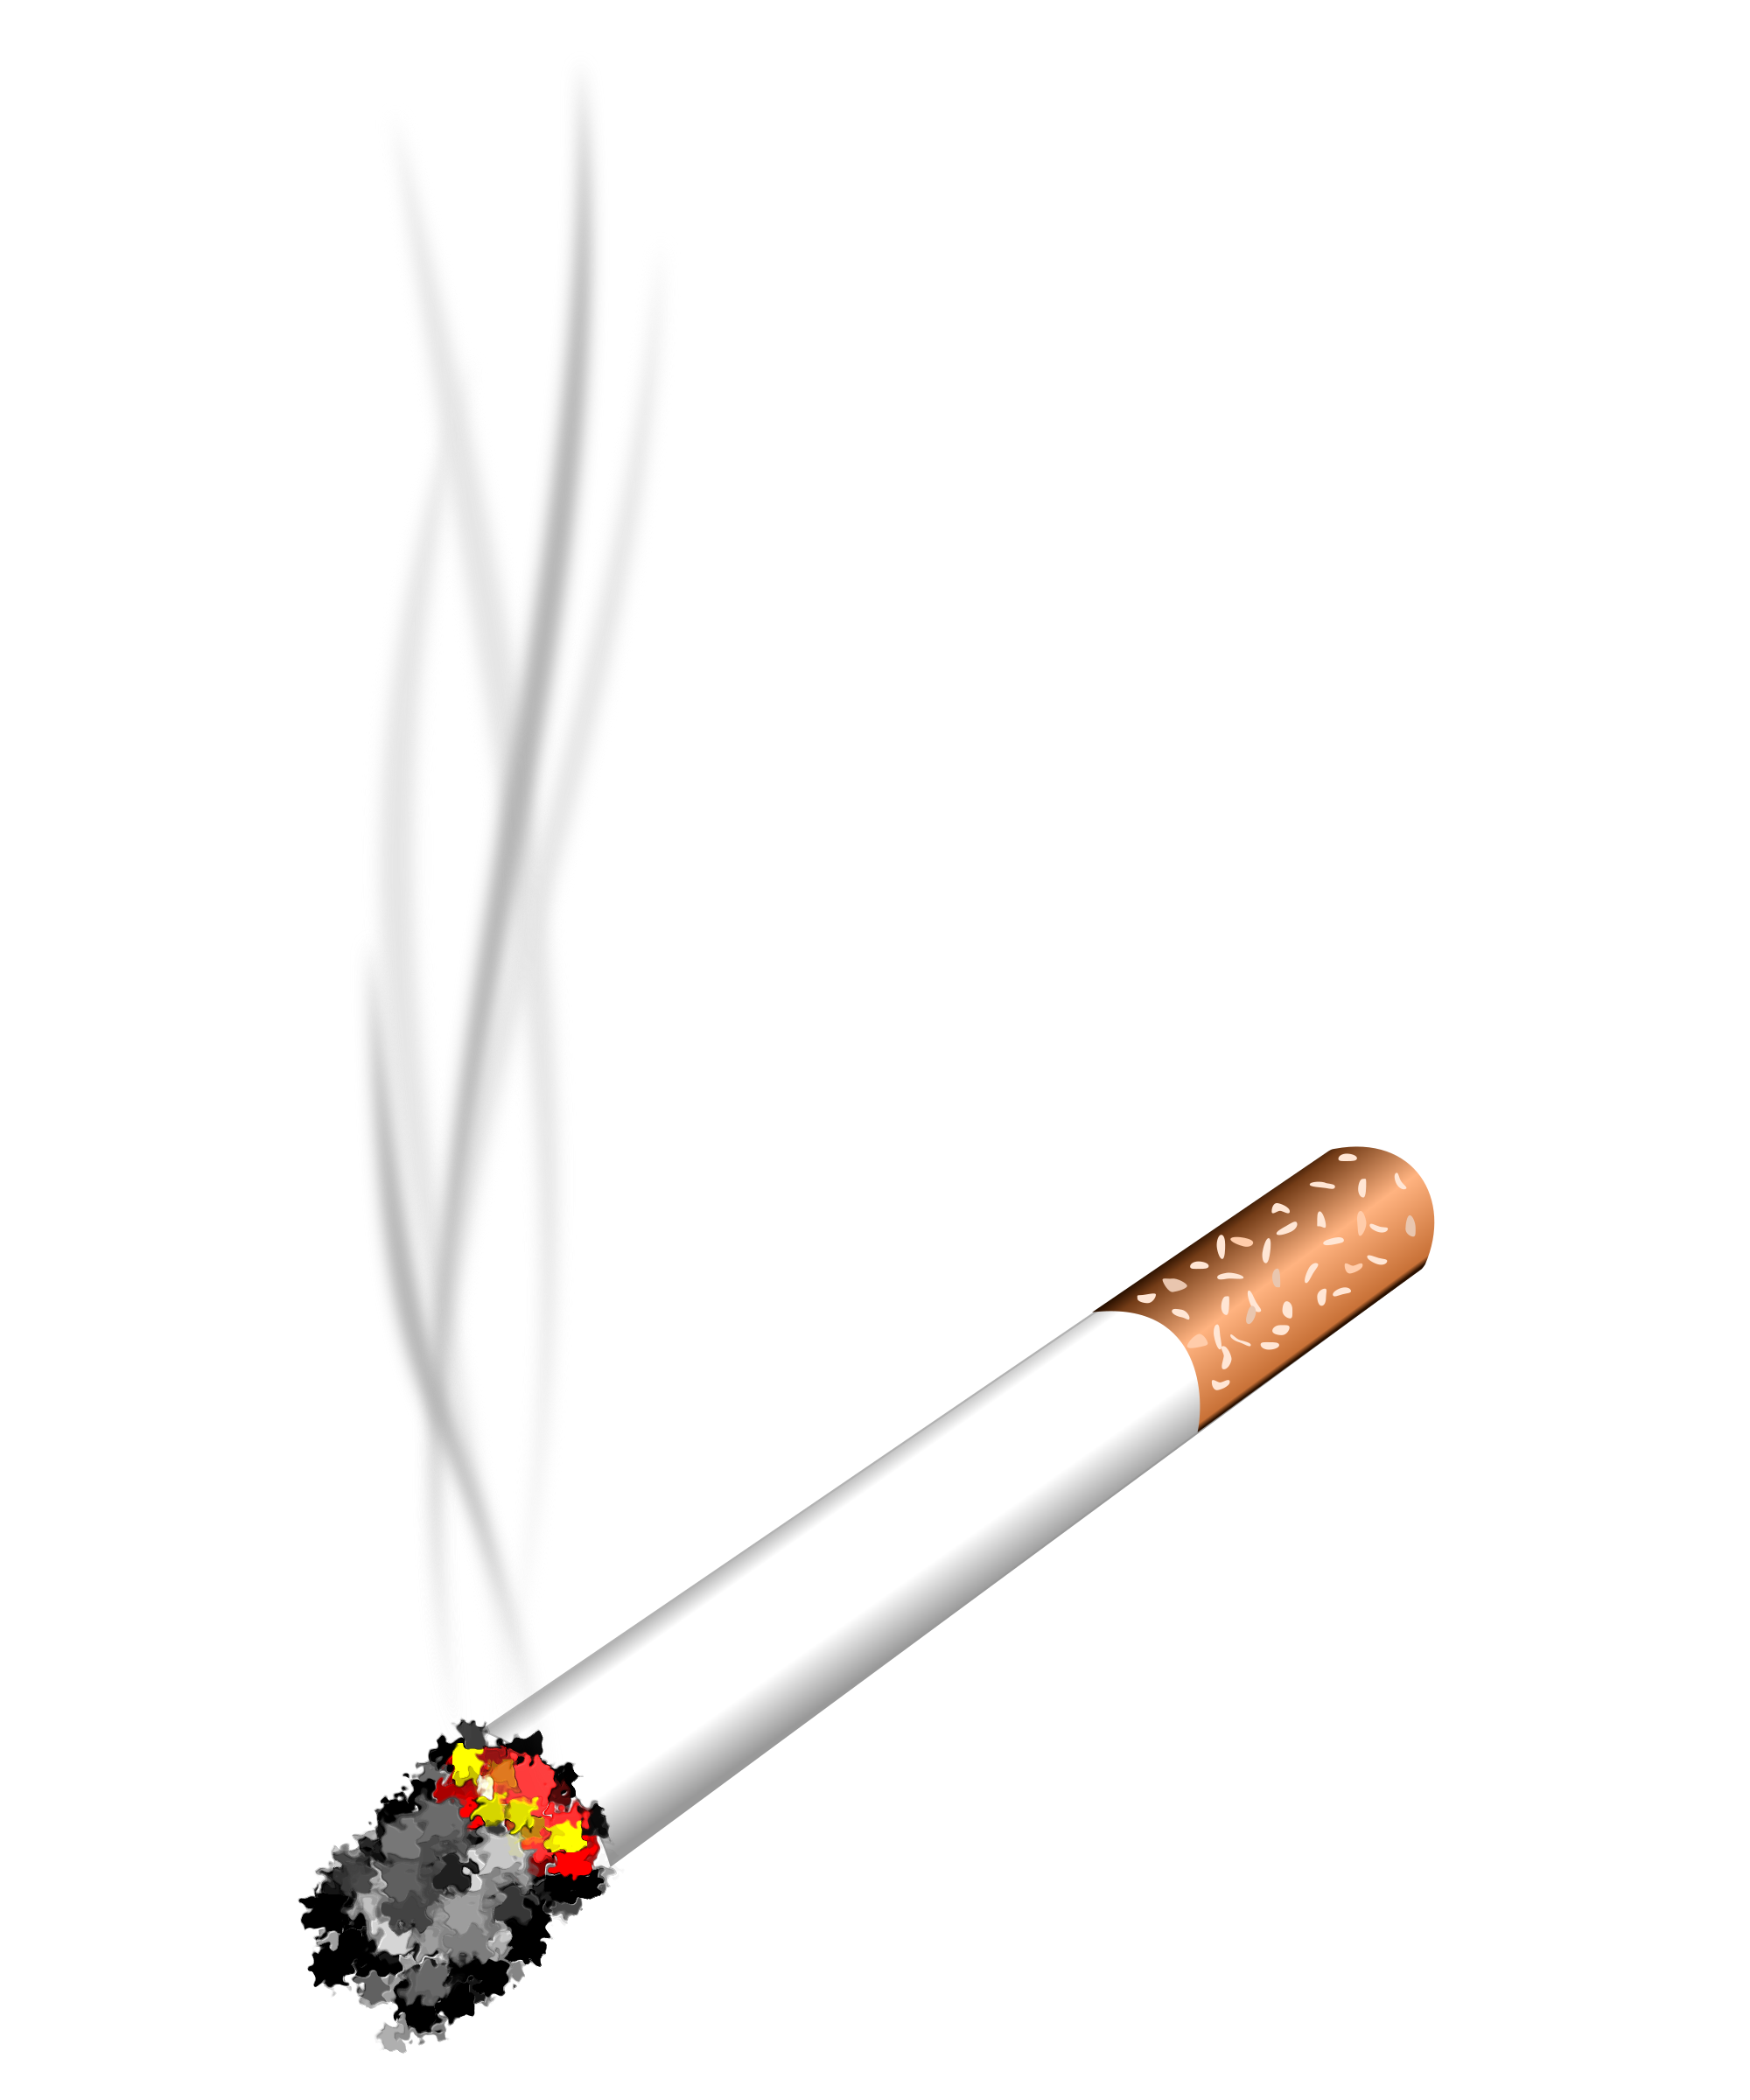 Cigarettes Png Available In Different Size image #24481